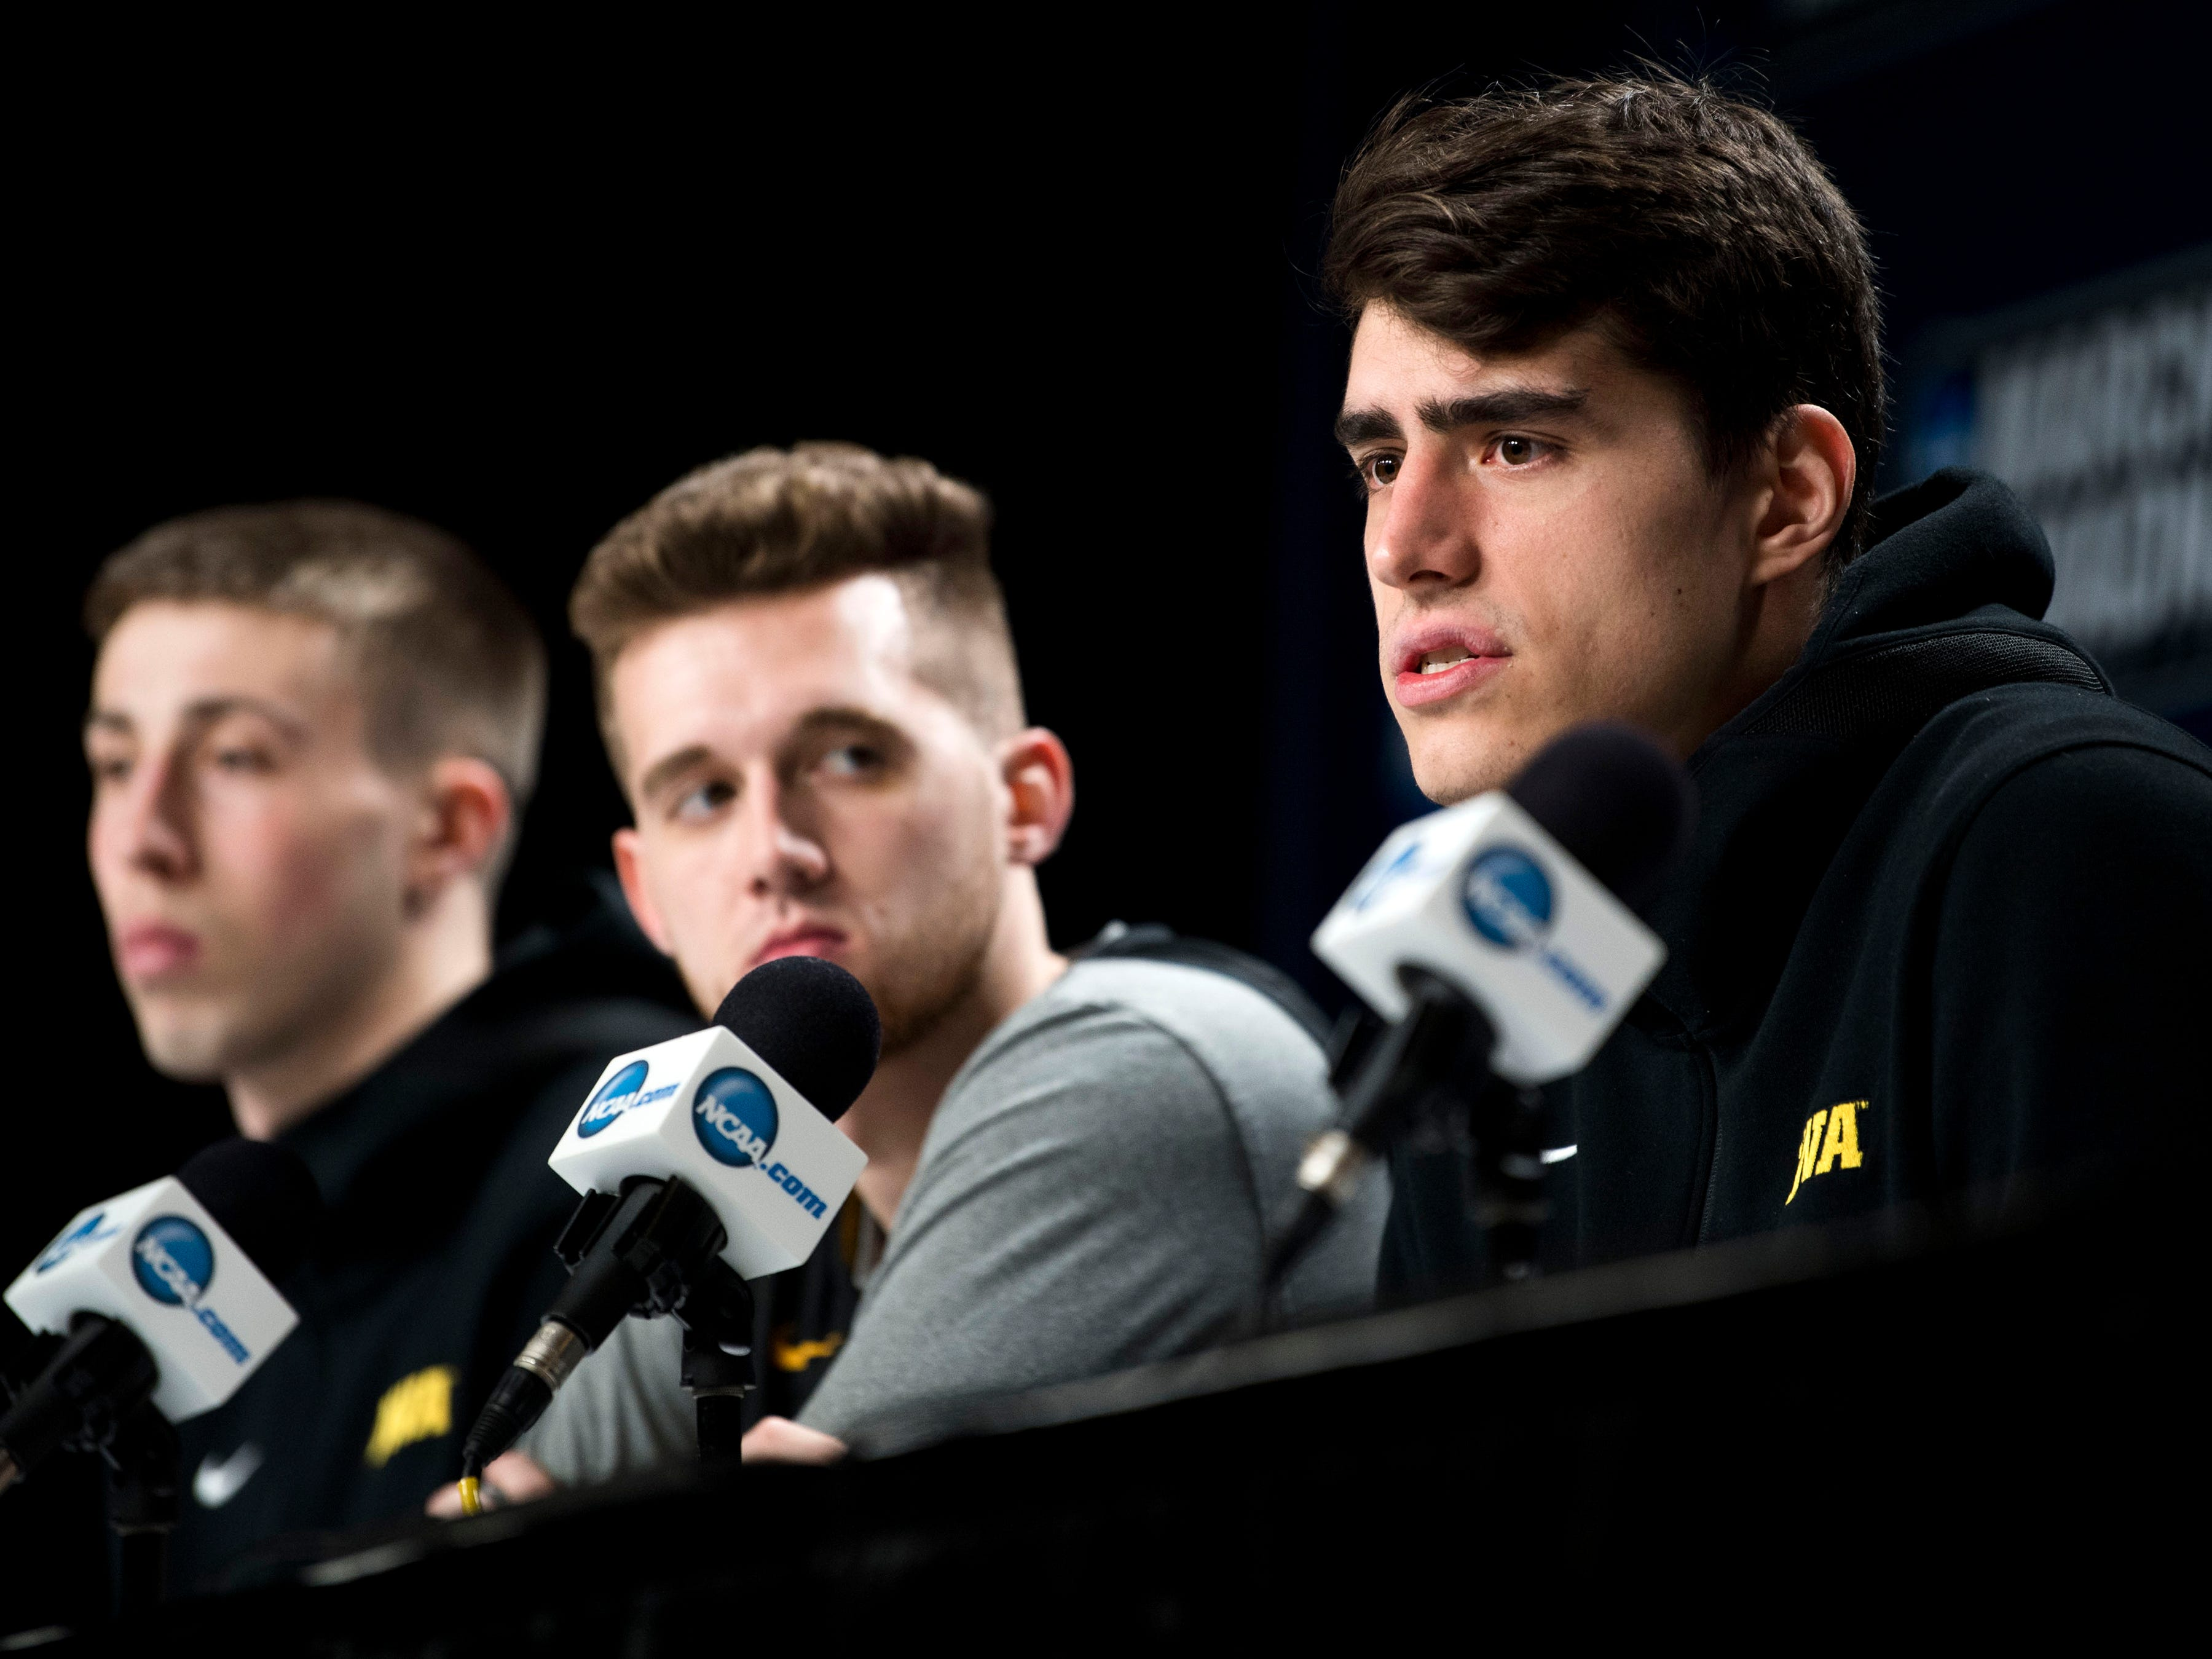 Iowa's Luka Garza, right, speaks at a press conference on Saturday, March 23, 2019, before the Tennessee Volunteers and Iowa Hawkeyes compete against one another in the second round of the NCAA Tournament held at Nationwide Arena in Columbus, Ohio on Sunday, March 24, 2019.